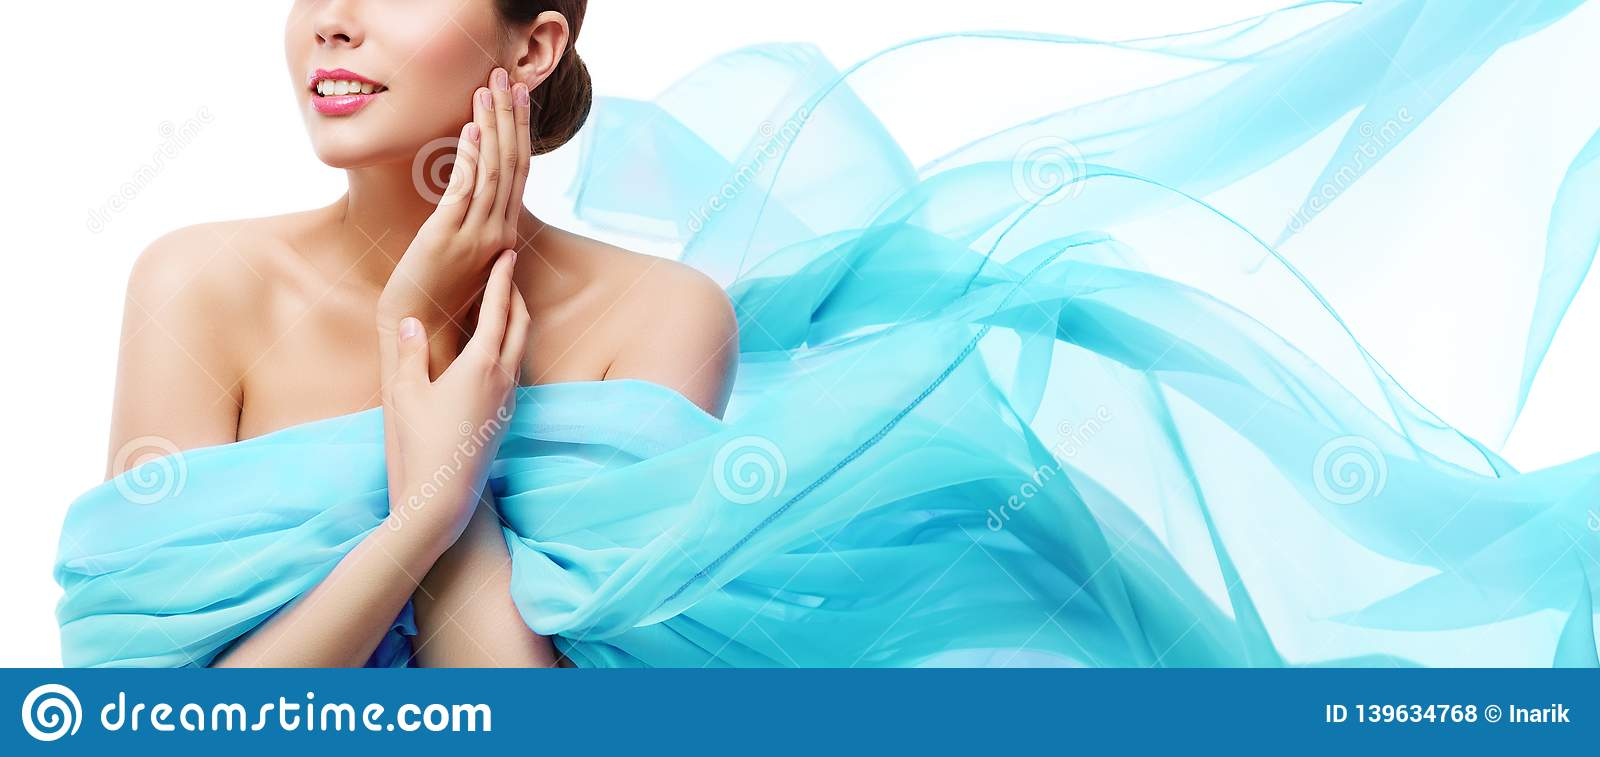 Beauty Makeup Skin Care, Woman Touching Face by Hand, Young Girl in Blue Waving Cloth